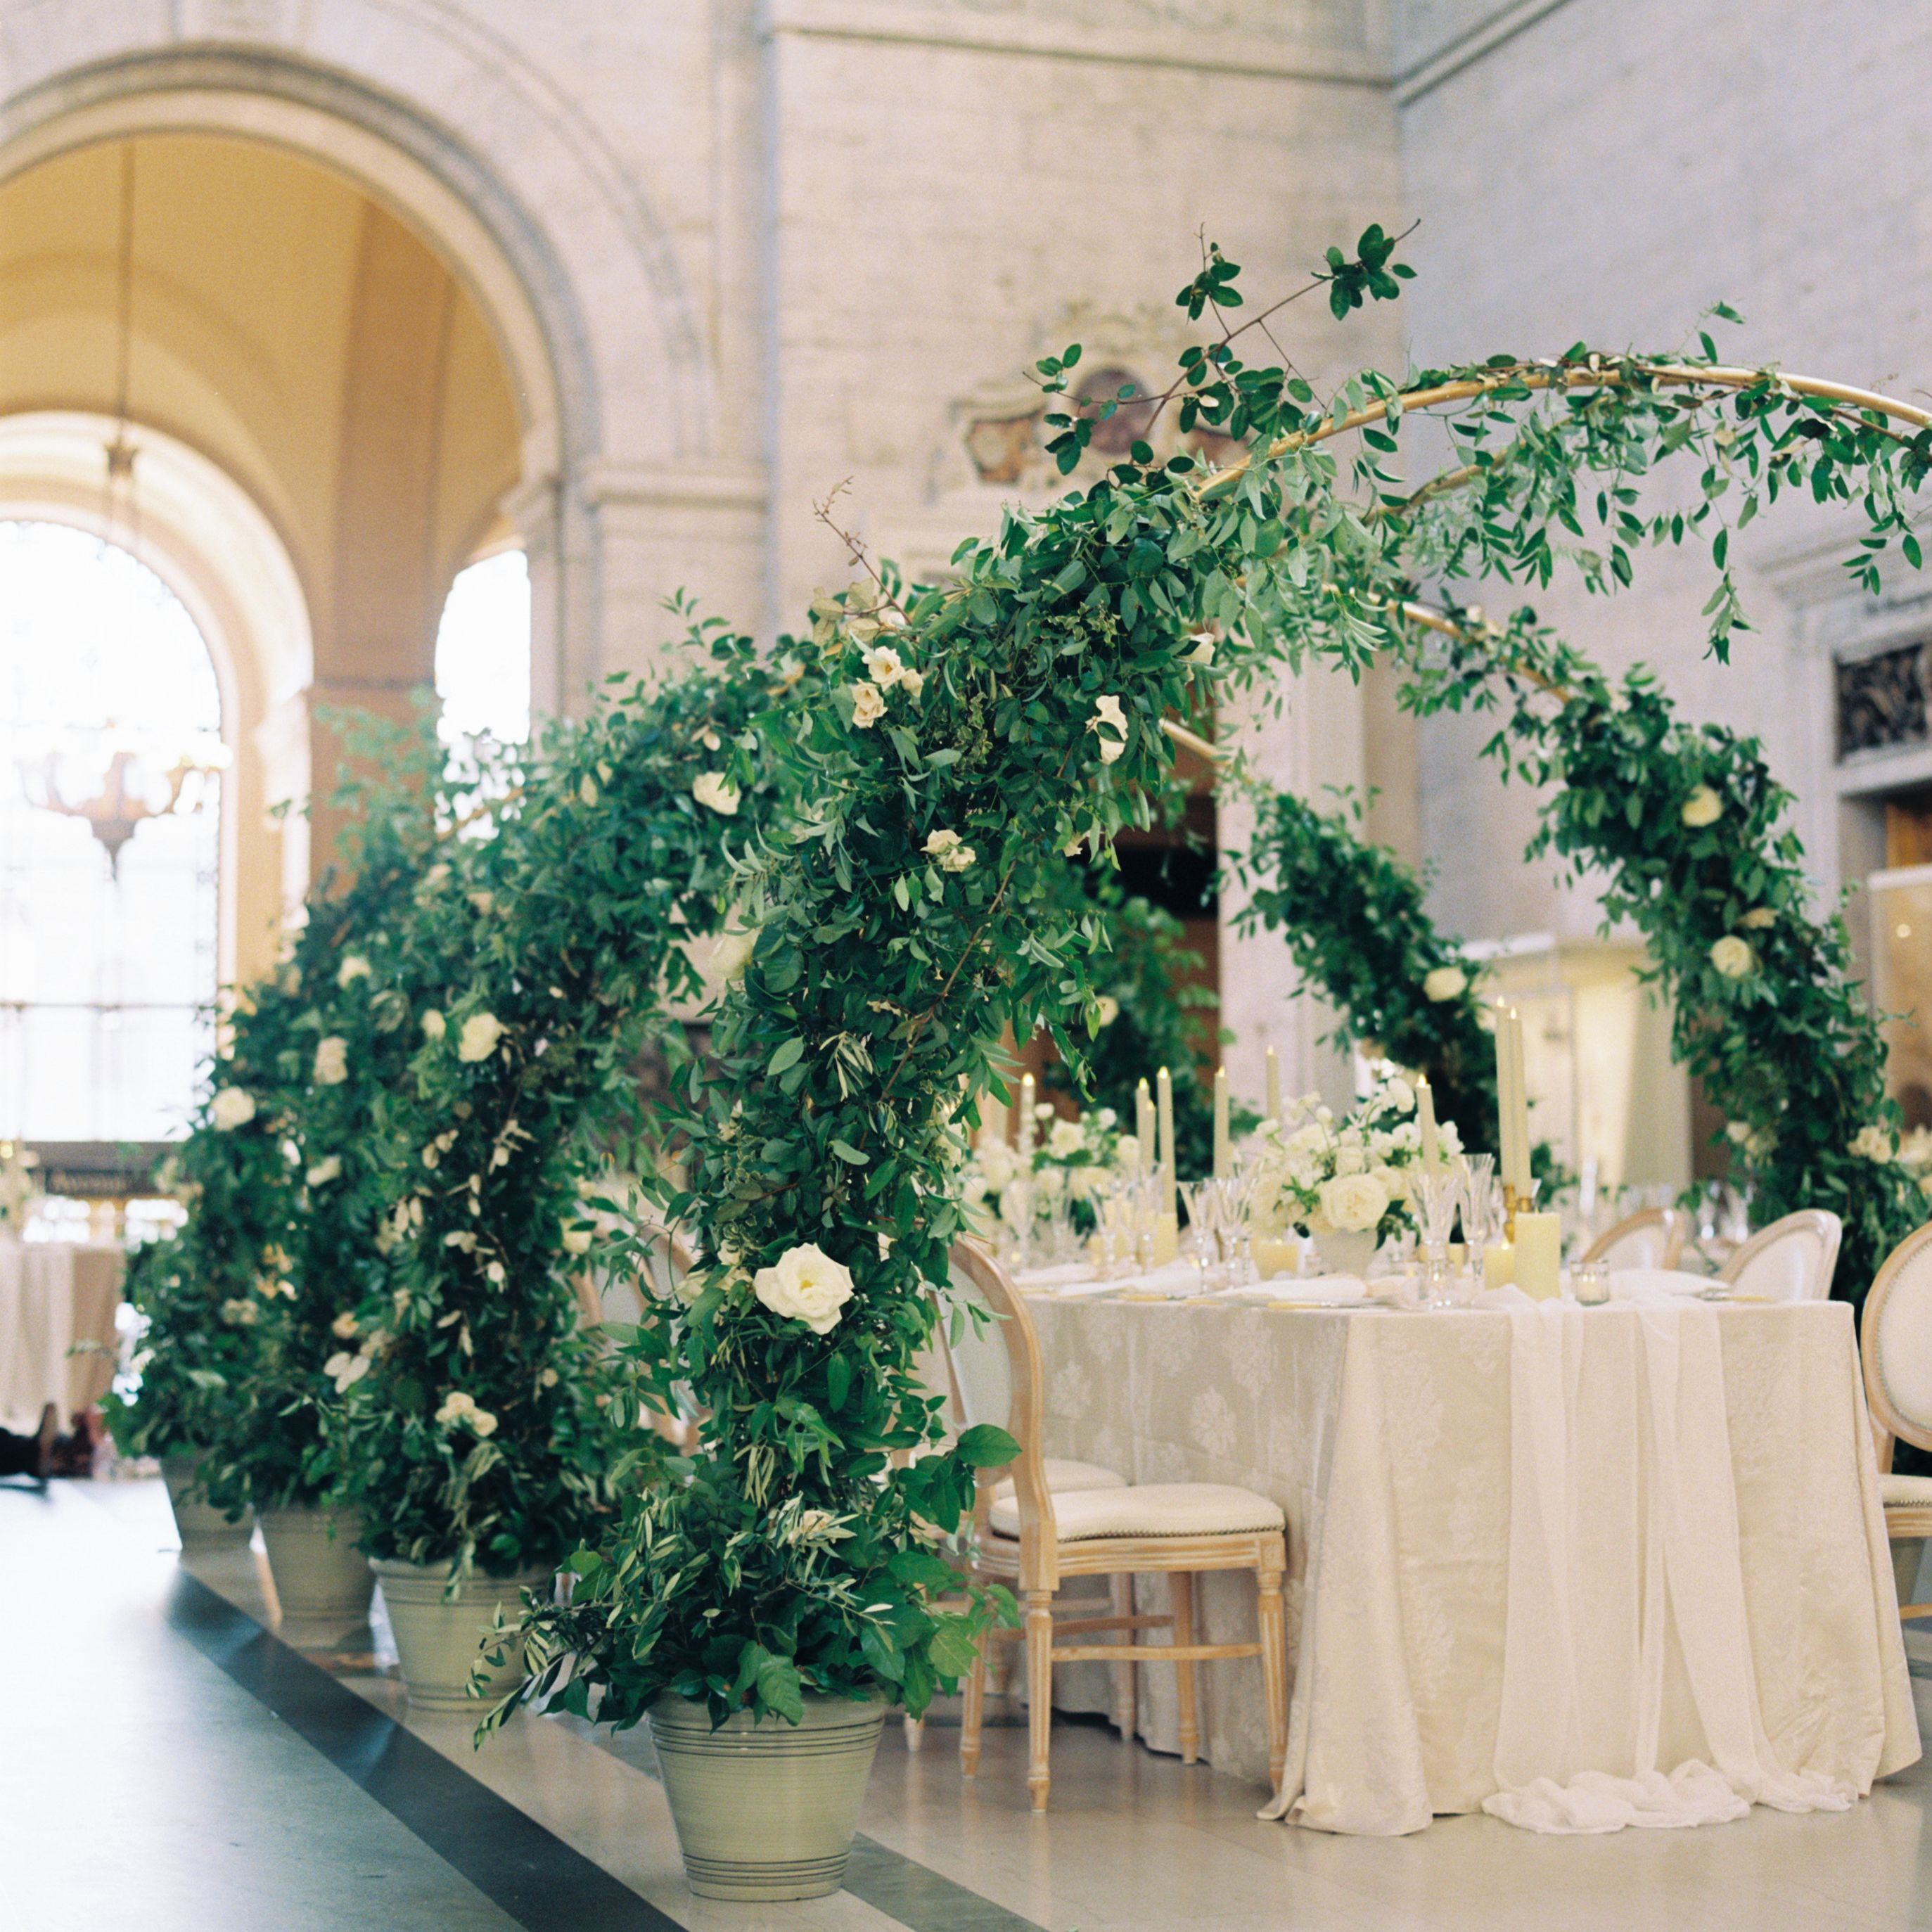 11 Creative Ways To Make A Big Space Feel Intimate For Your Small Wedding